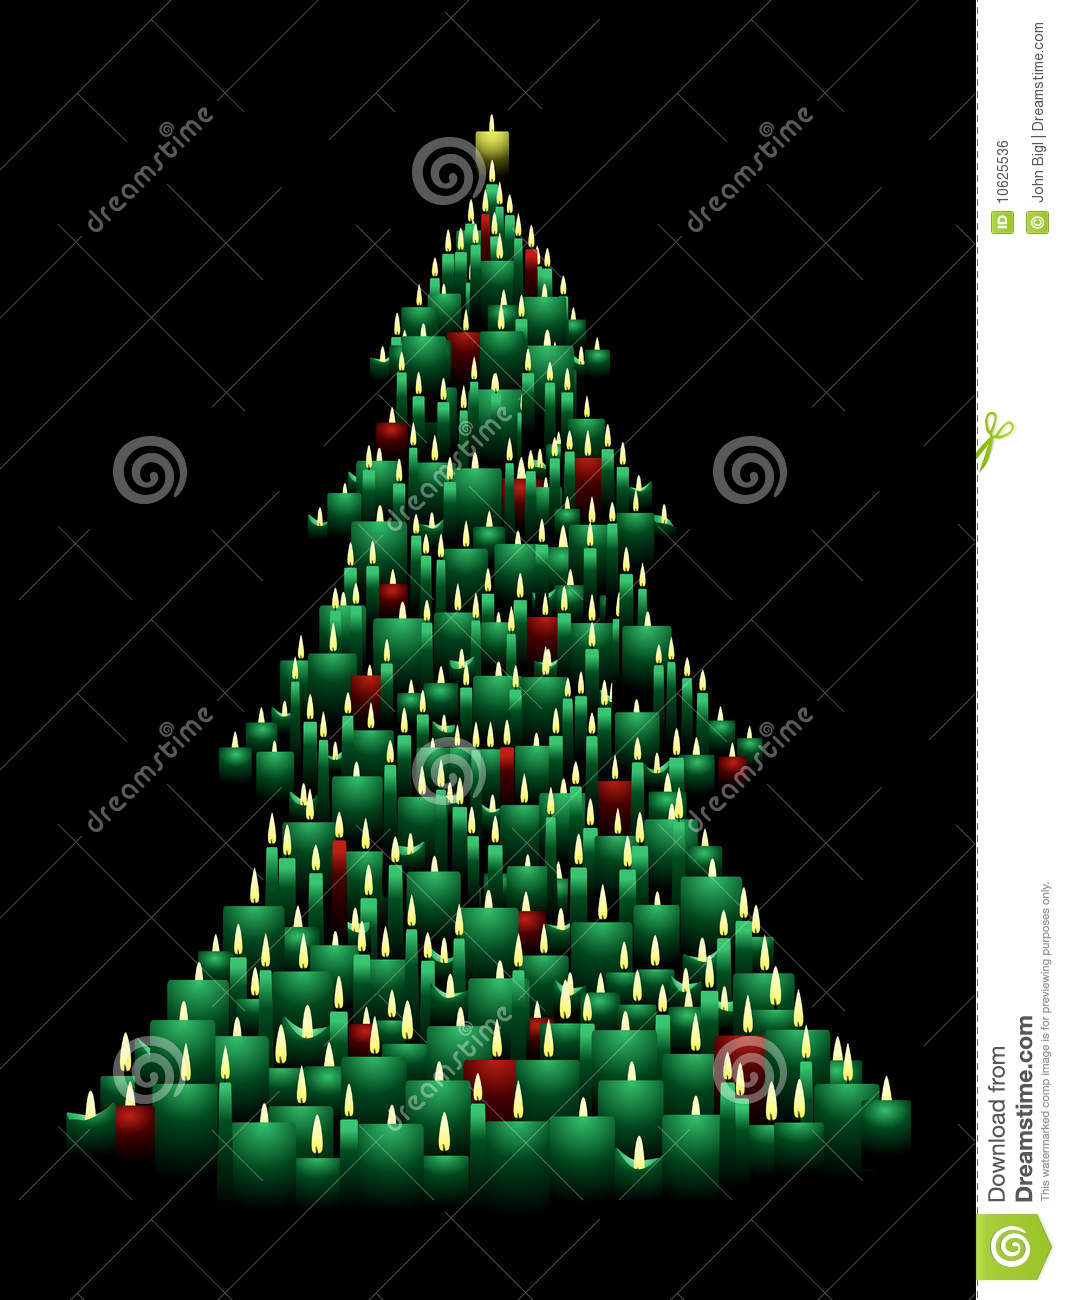 Christmas tree with candles clipart.